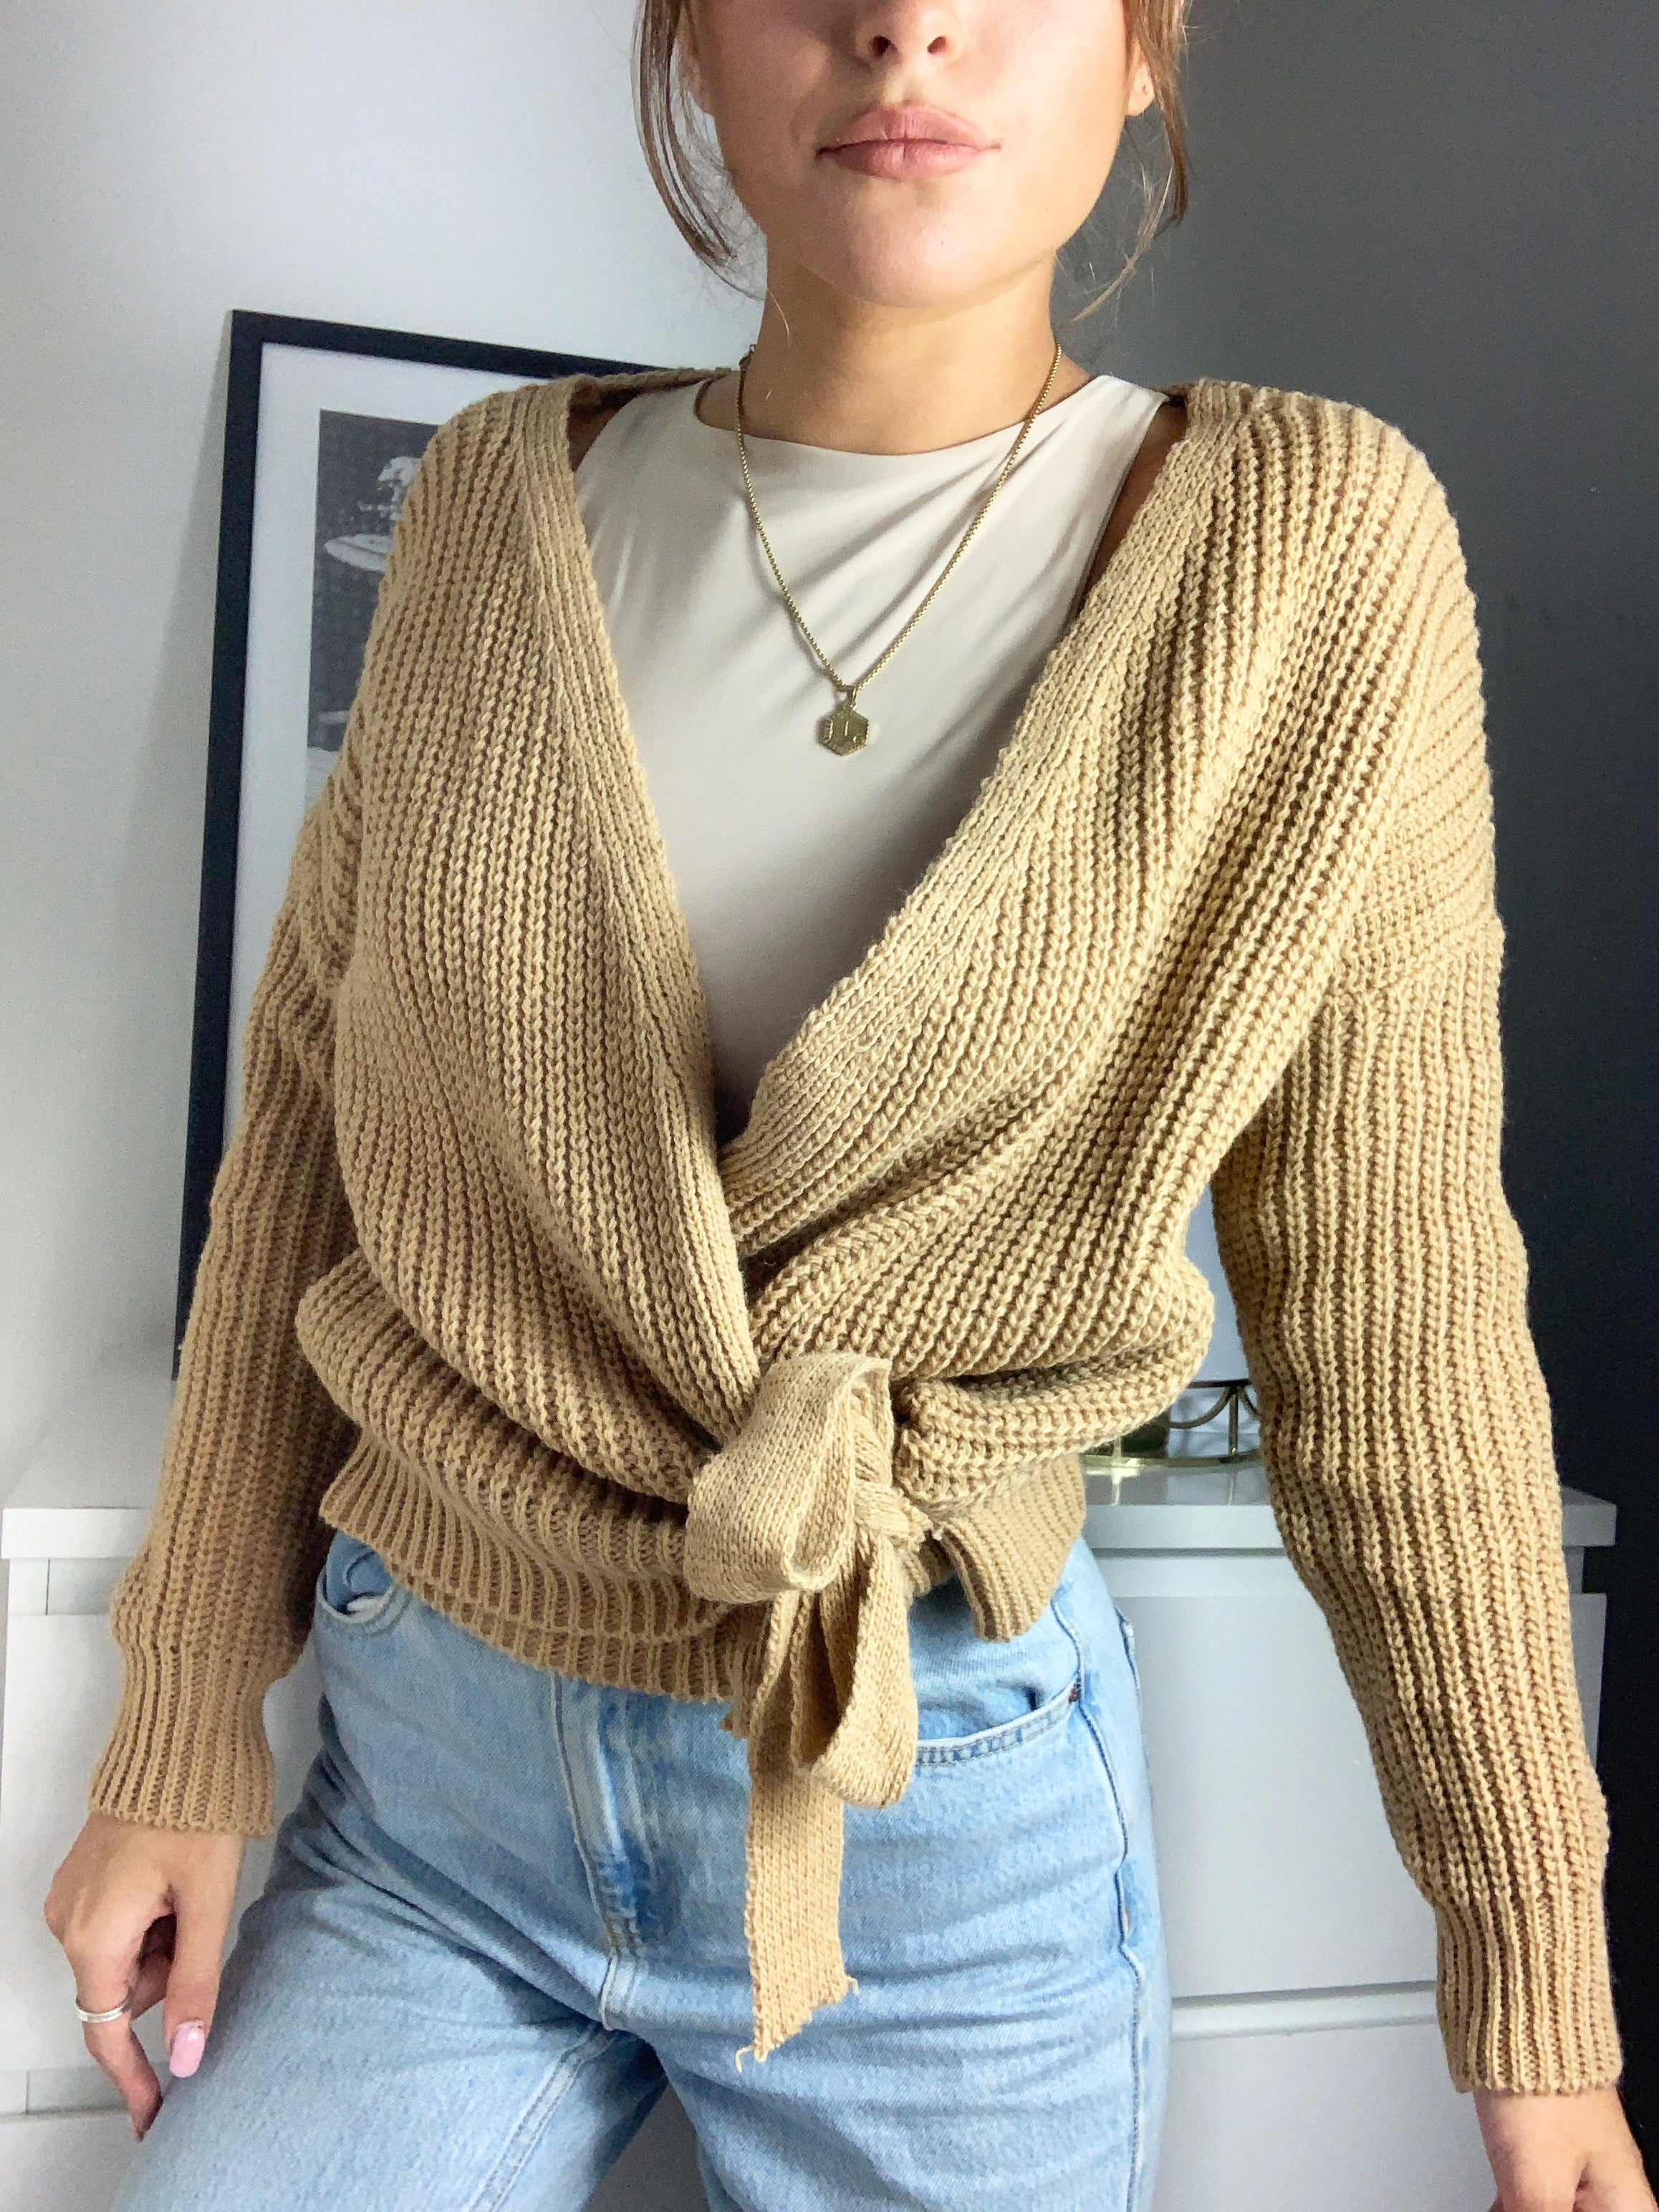 Riga Knitted Chunky Wrap Cardigan With Tie Belt Mustard Yellow